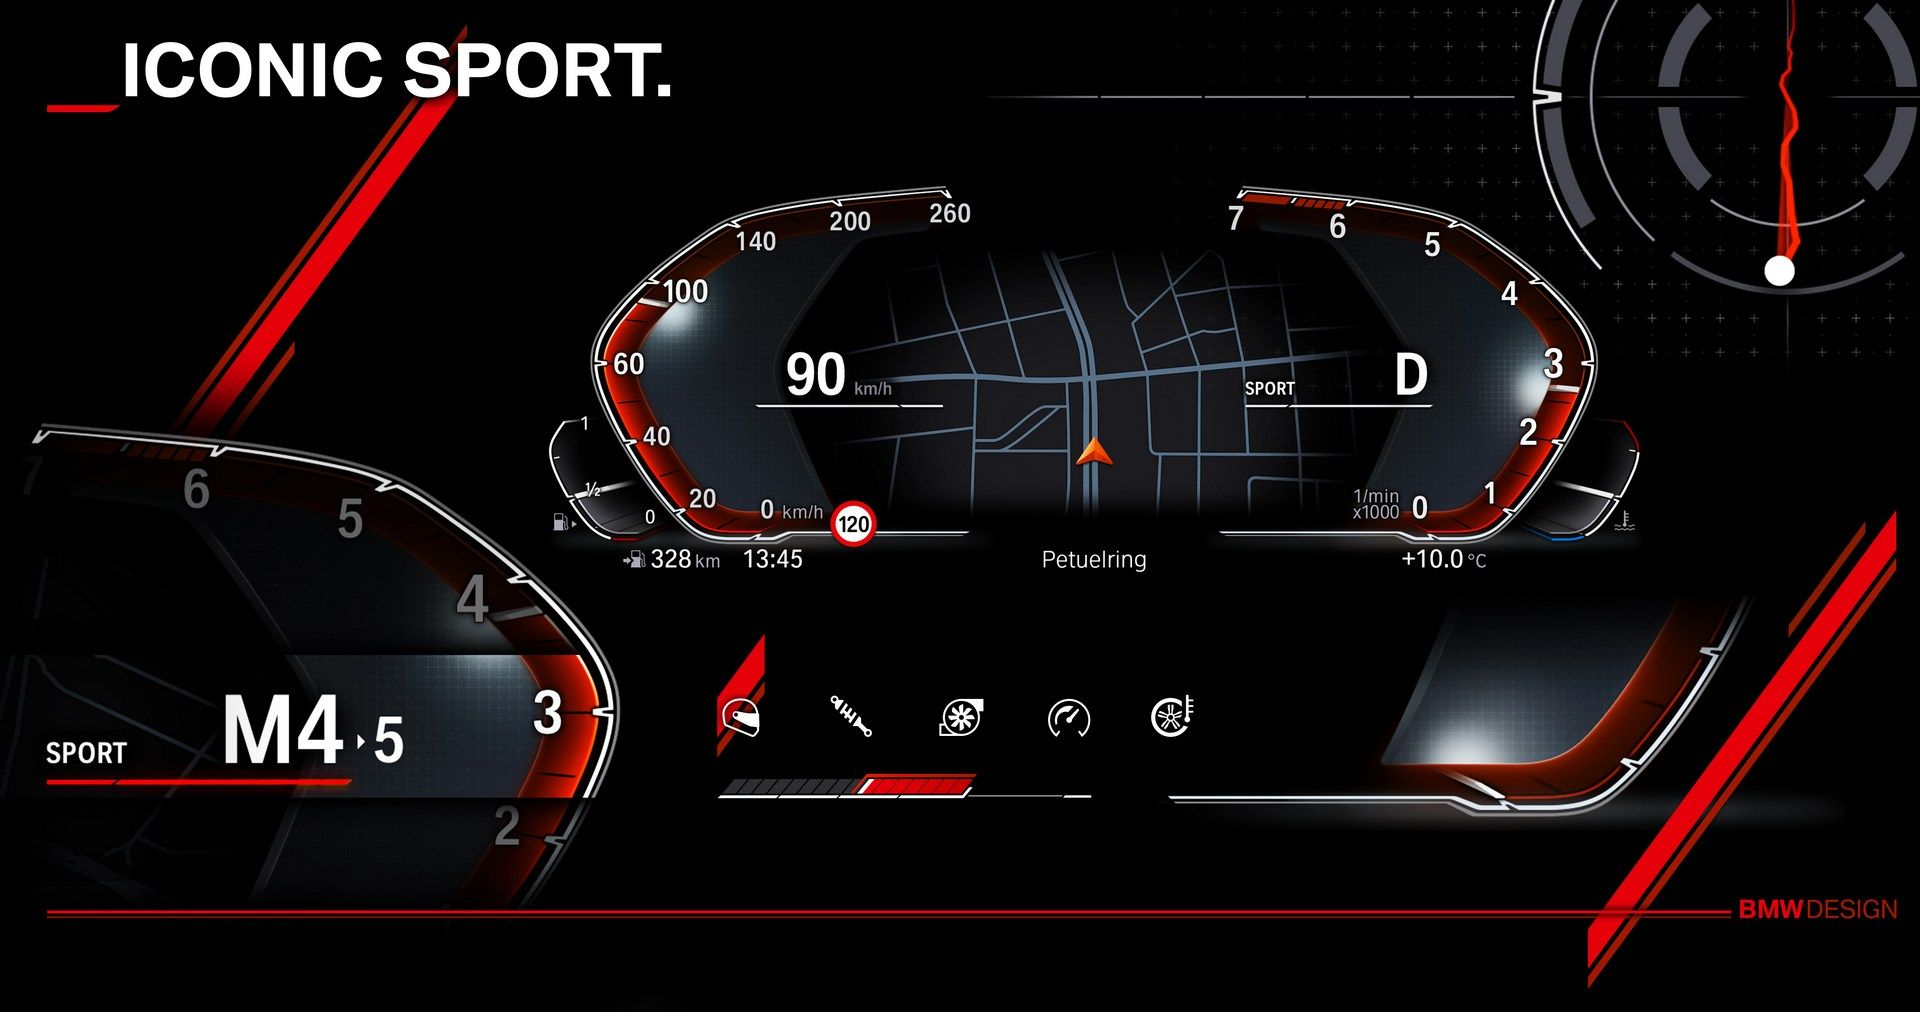 Here's a peek at BMW's new infotainment system and digital instrument cluster